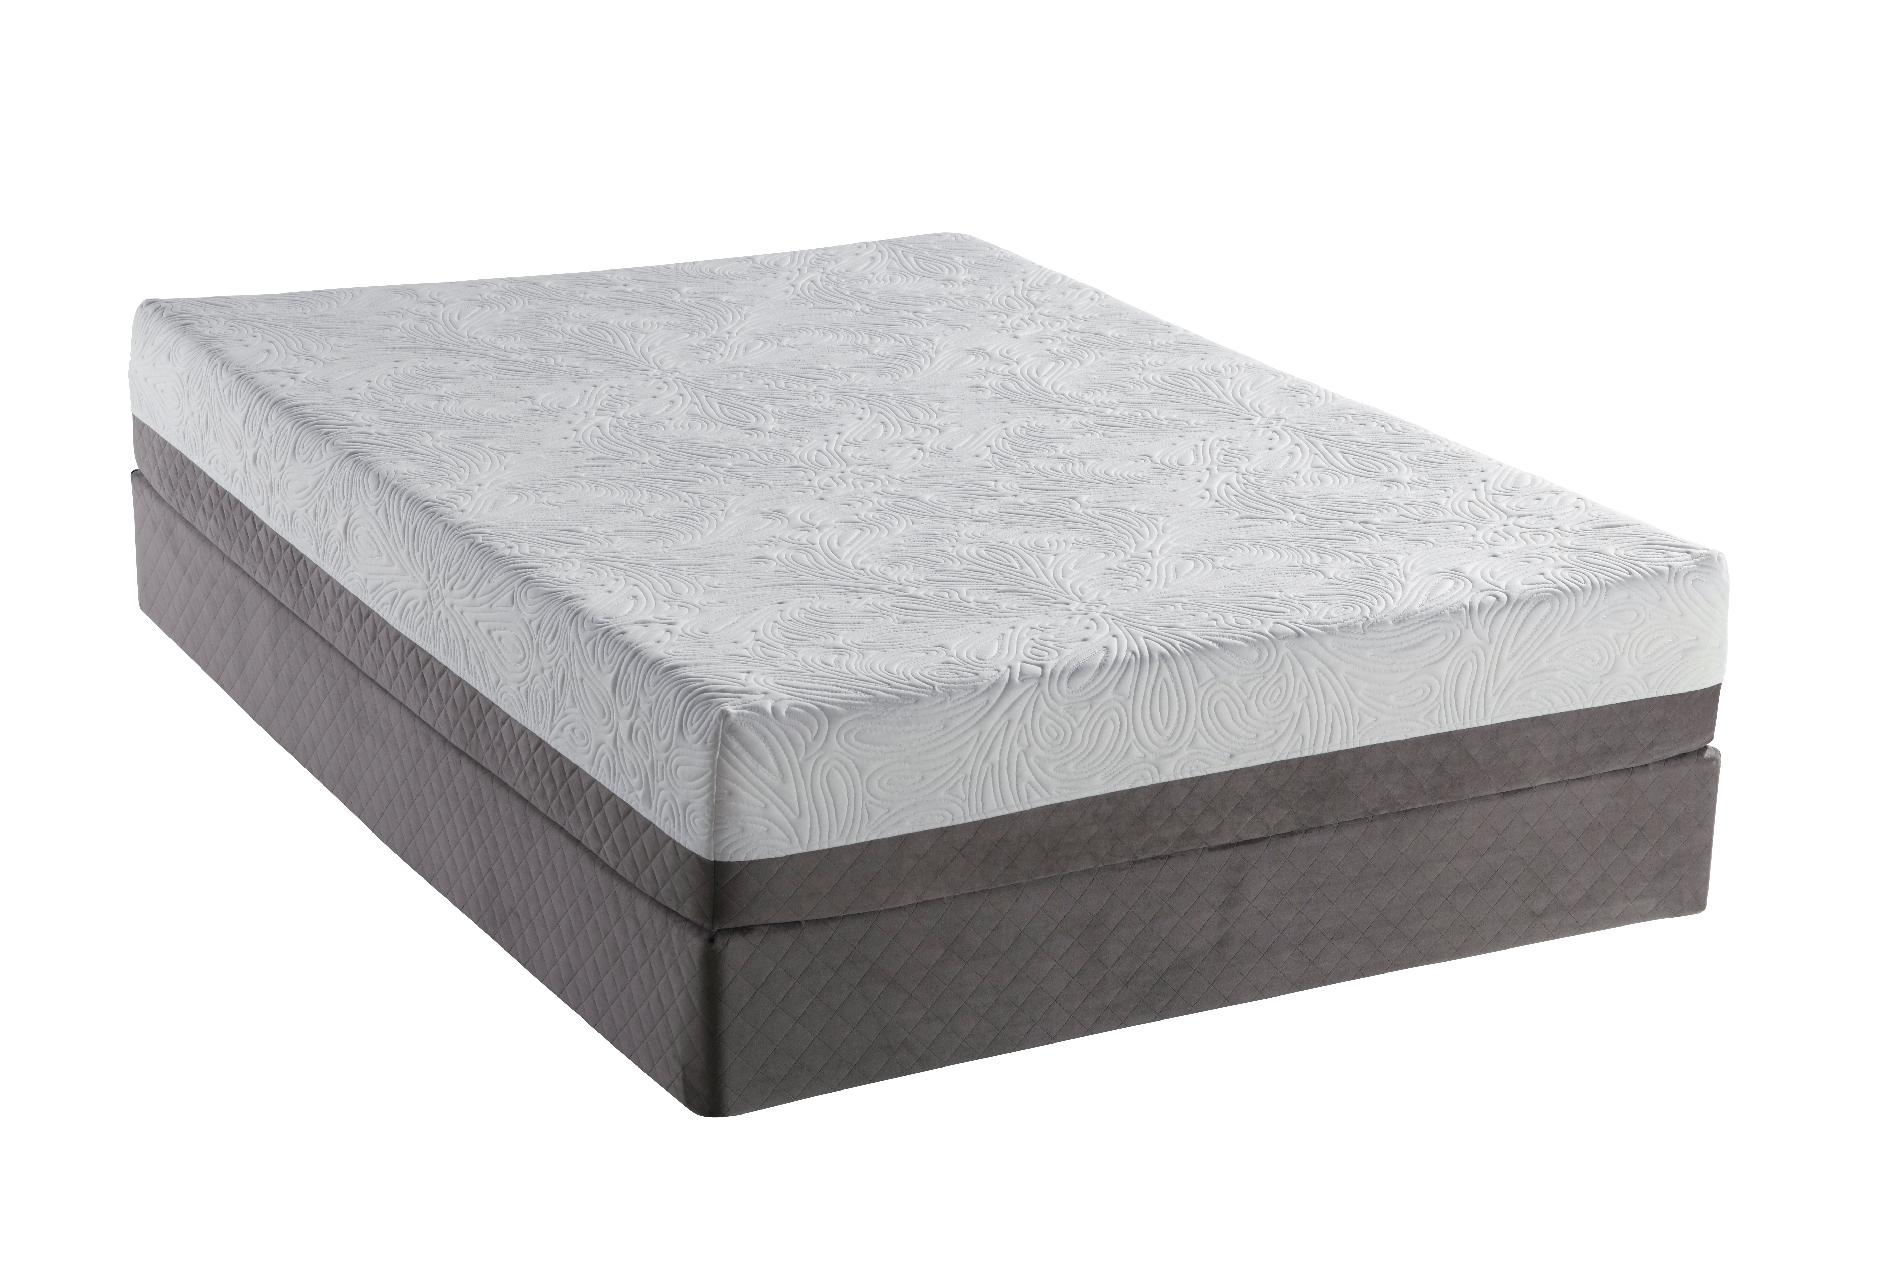 Sealy Posturepedic Optimum Inspiration, Plush, Twin Extra Long Mattress Only